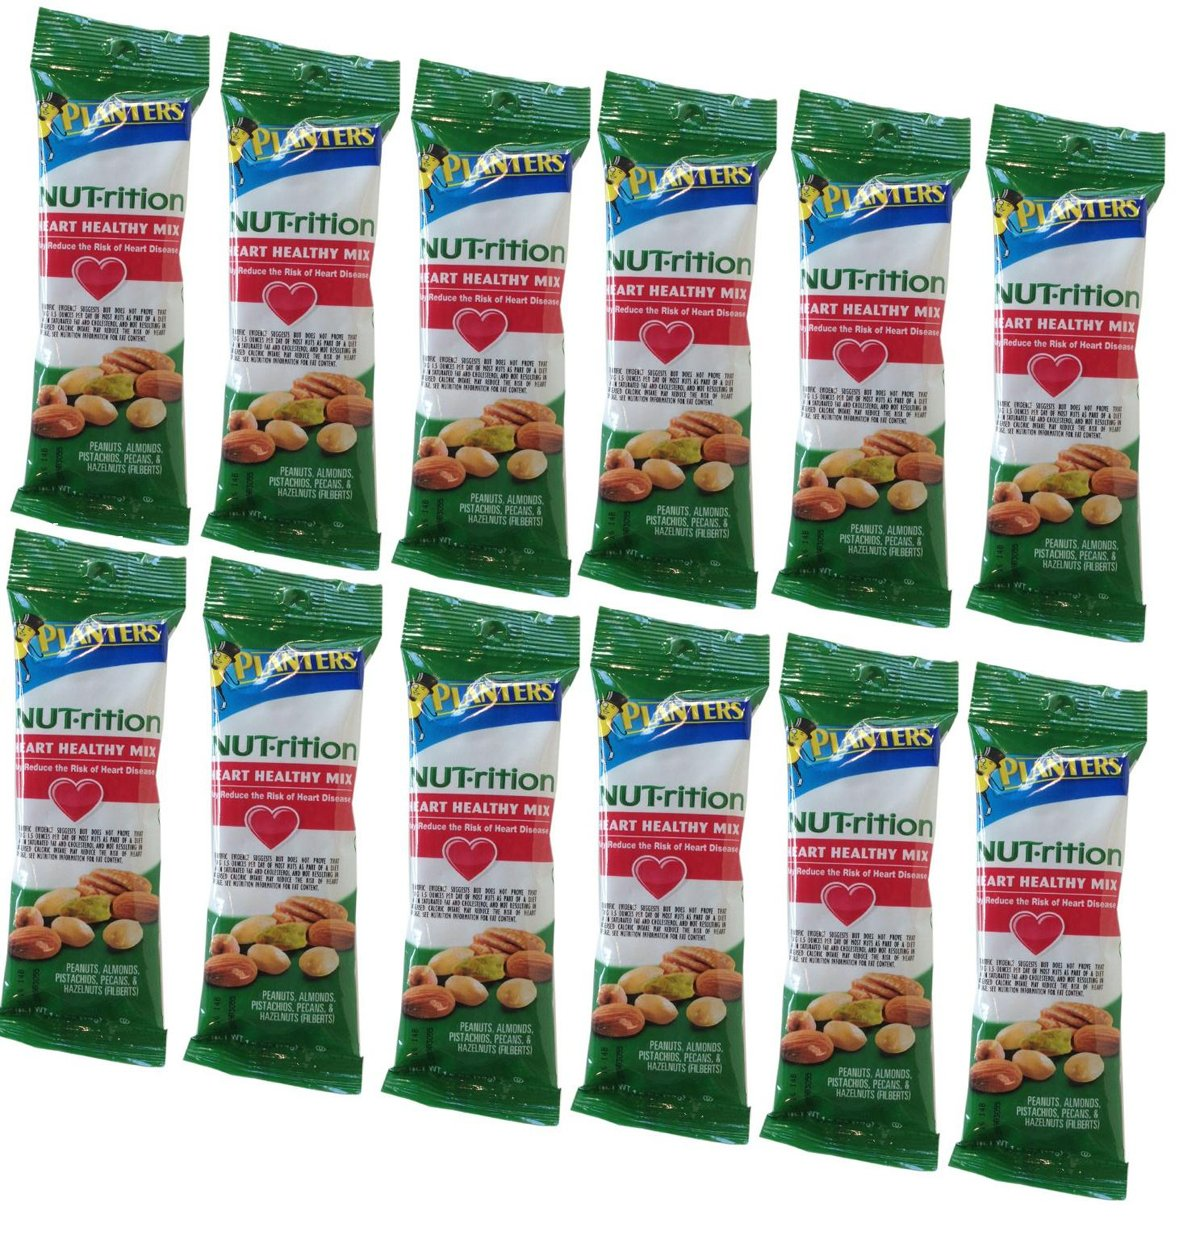 Planters Nut-rition Heart Healthy Mix - 1.5 Oz. (12 Ct.) - SCS